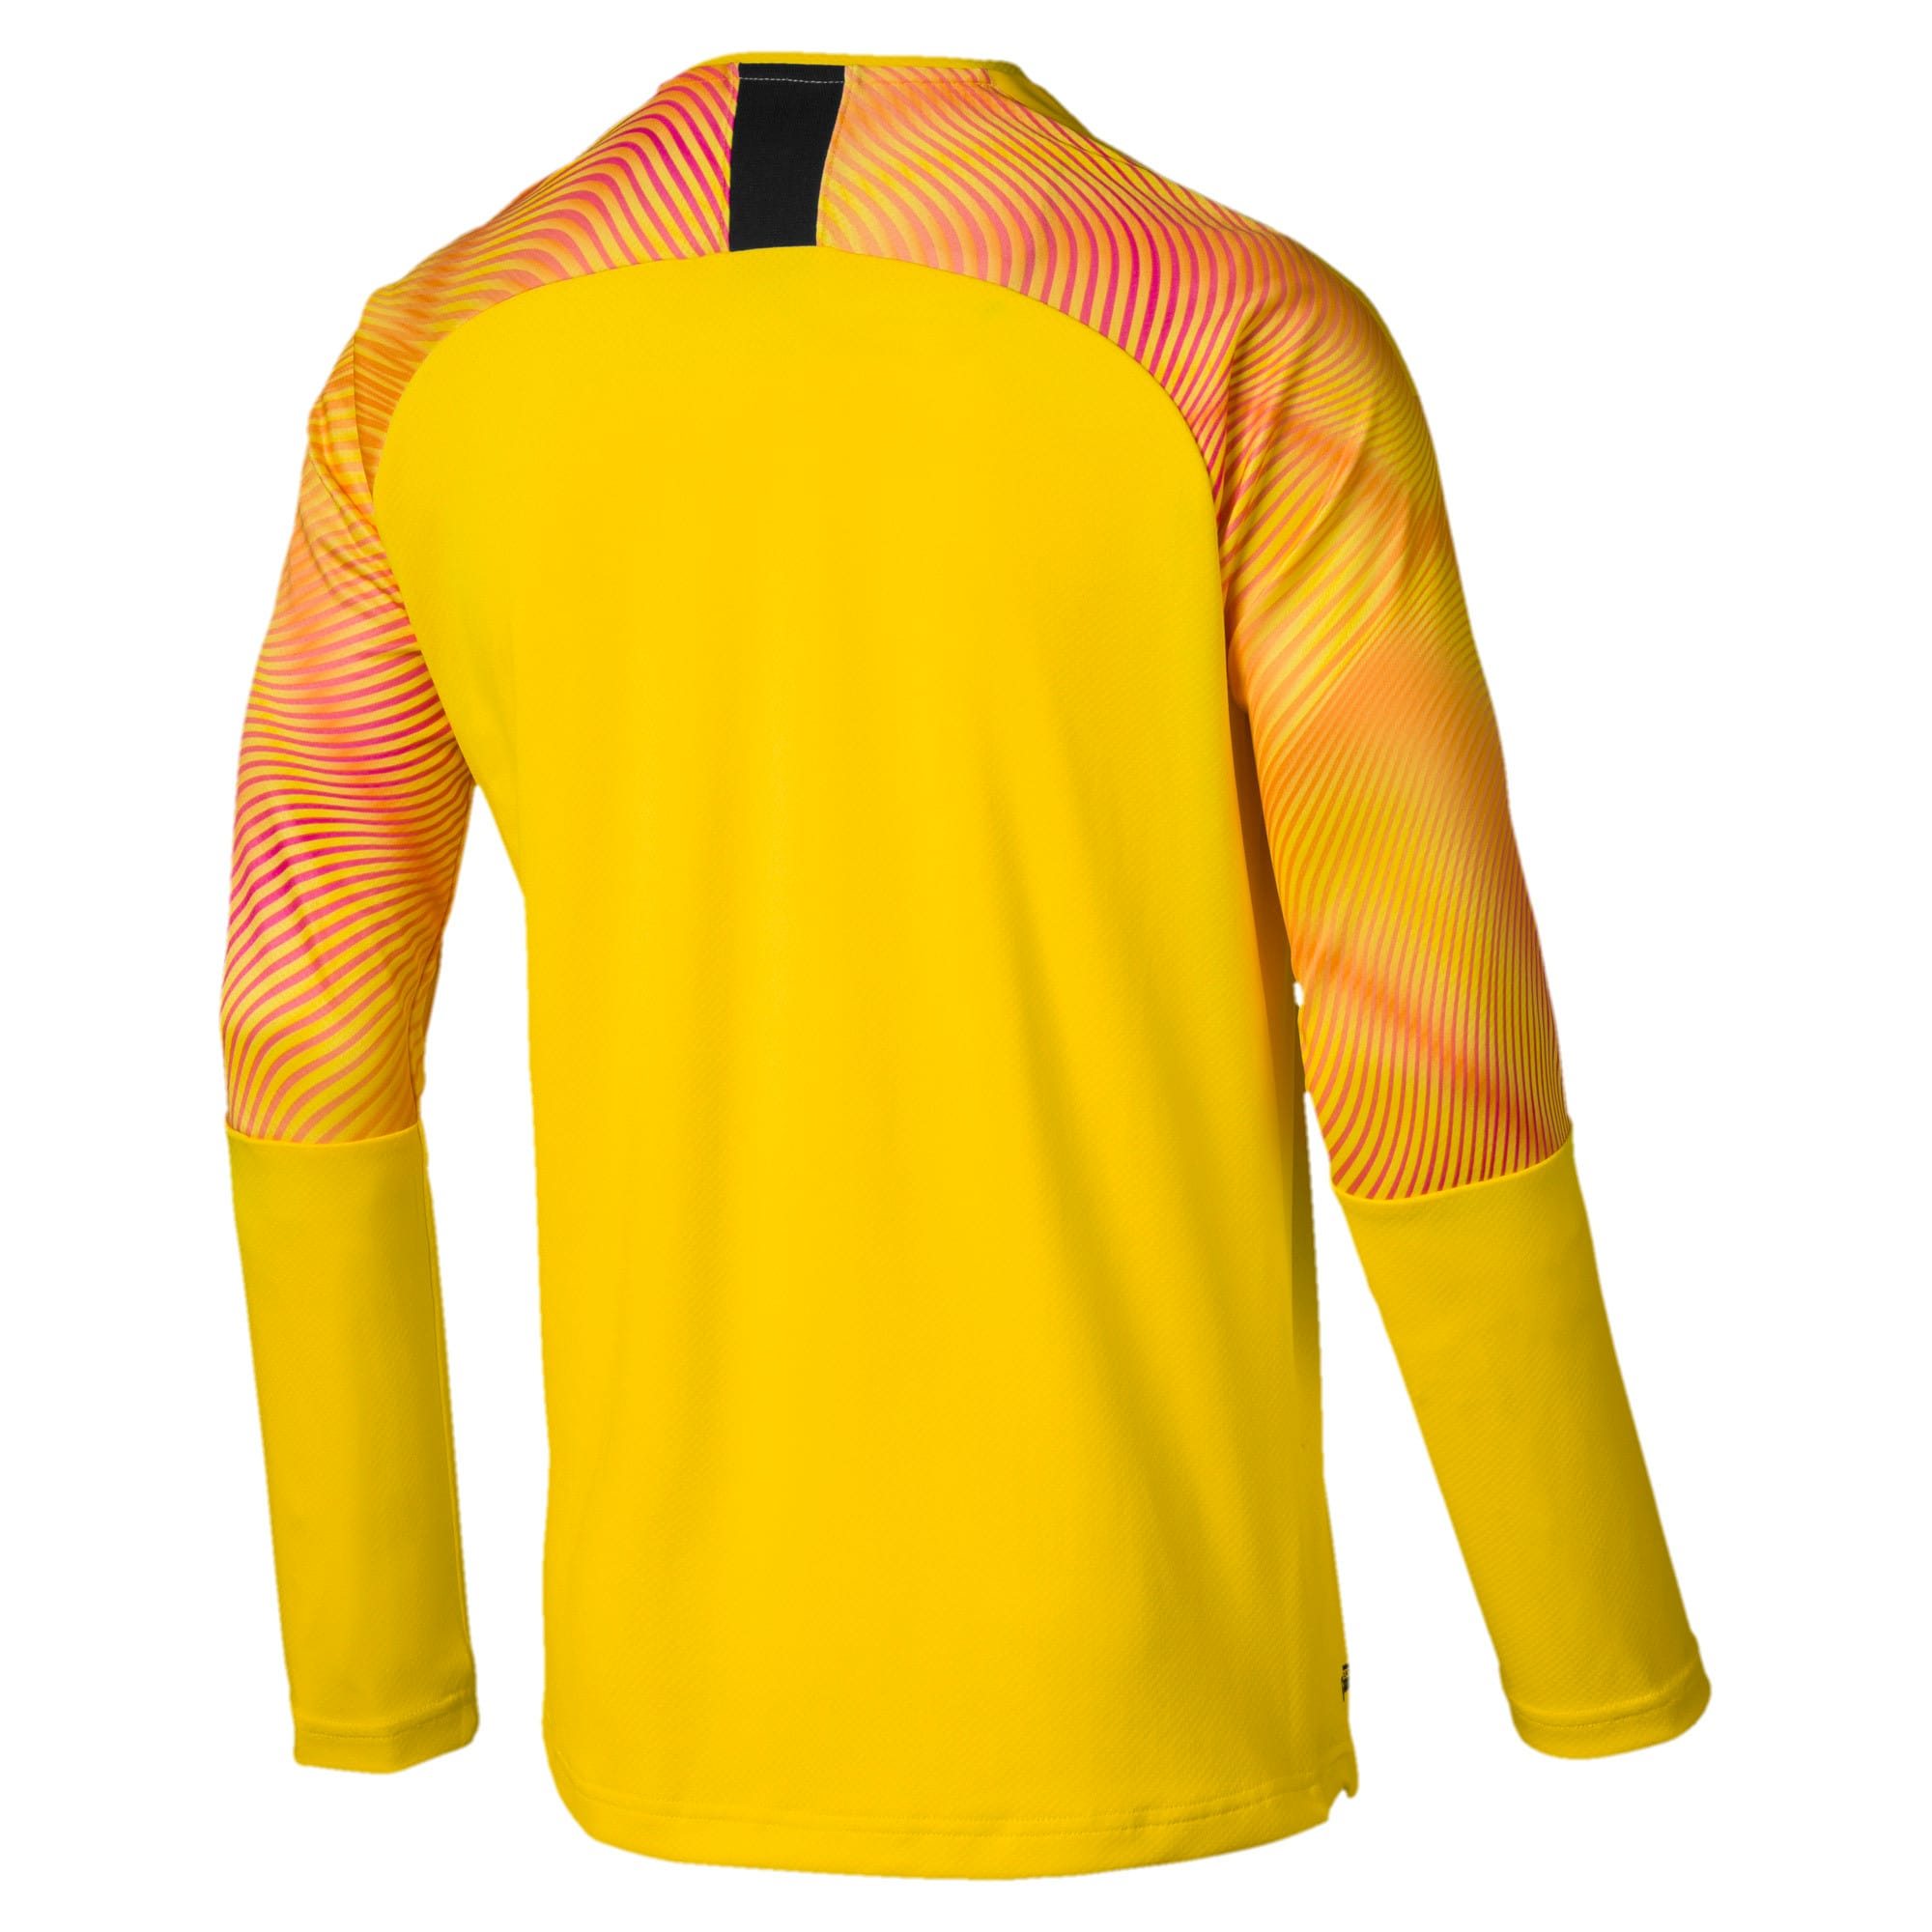 Thumbnail 2 of Man City Men's Replica Goalkeeper Jersey, Cyber Yellow-Puma Black, medium